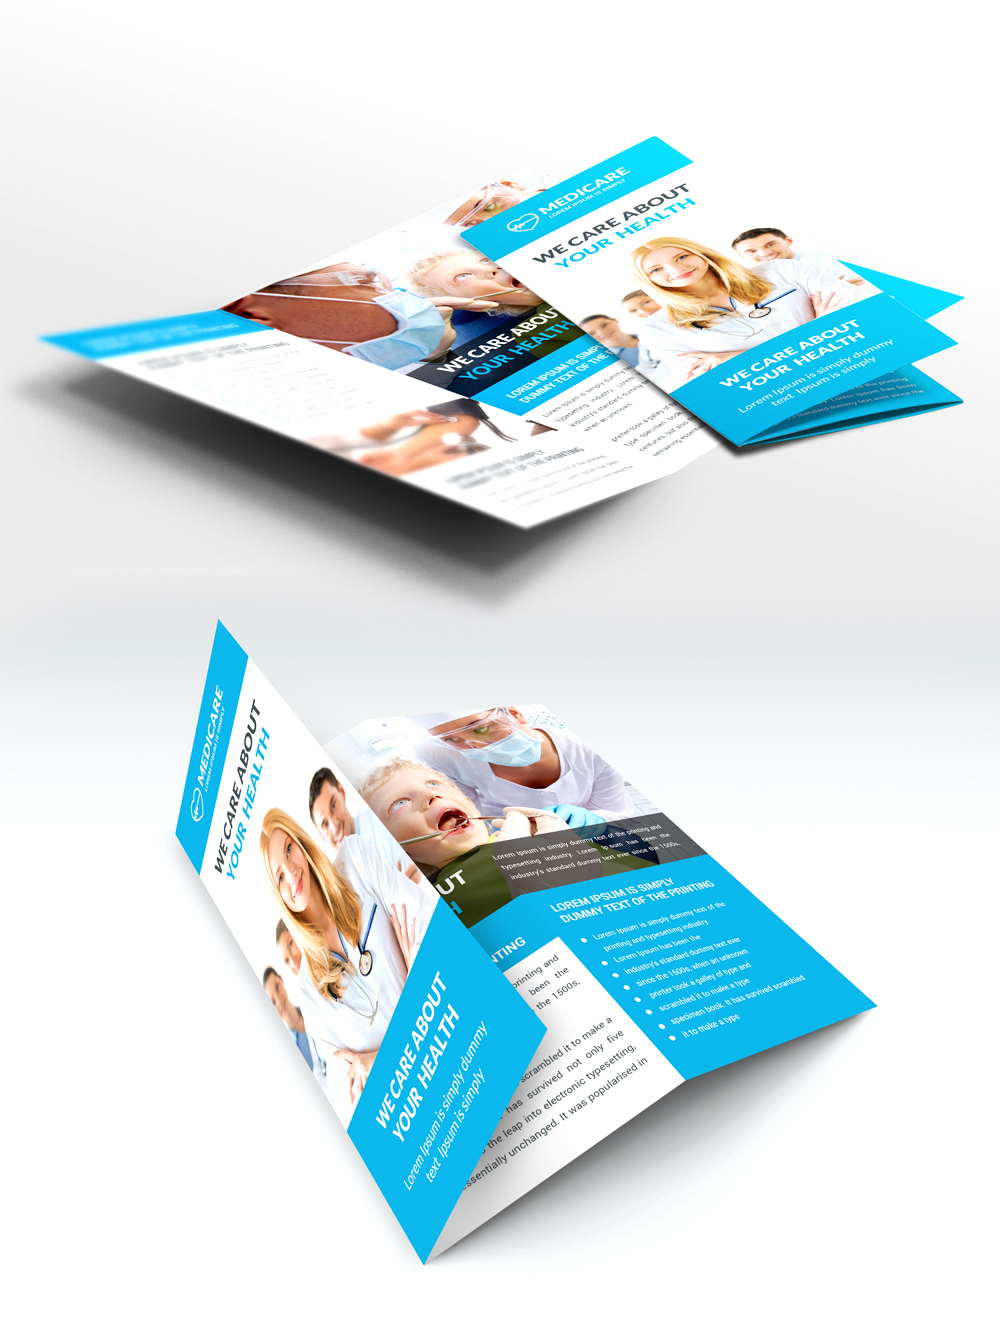 Medical Care And Hospital Trifold Brochure Template Free PSD - Brochure templates psd free download